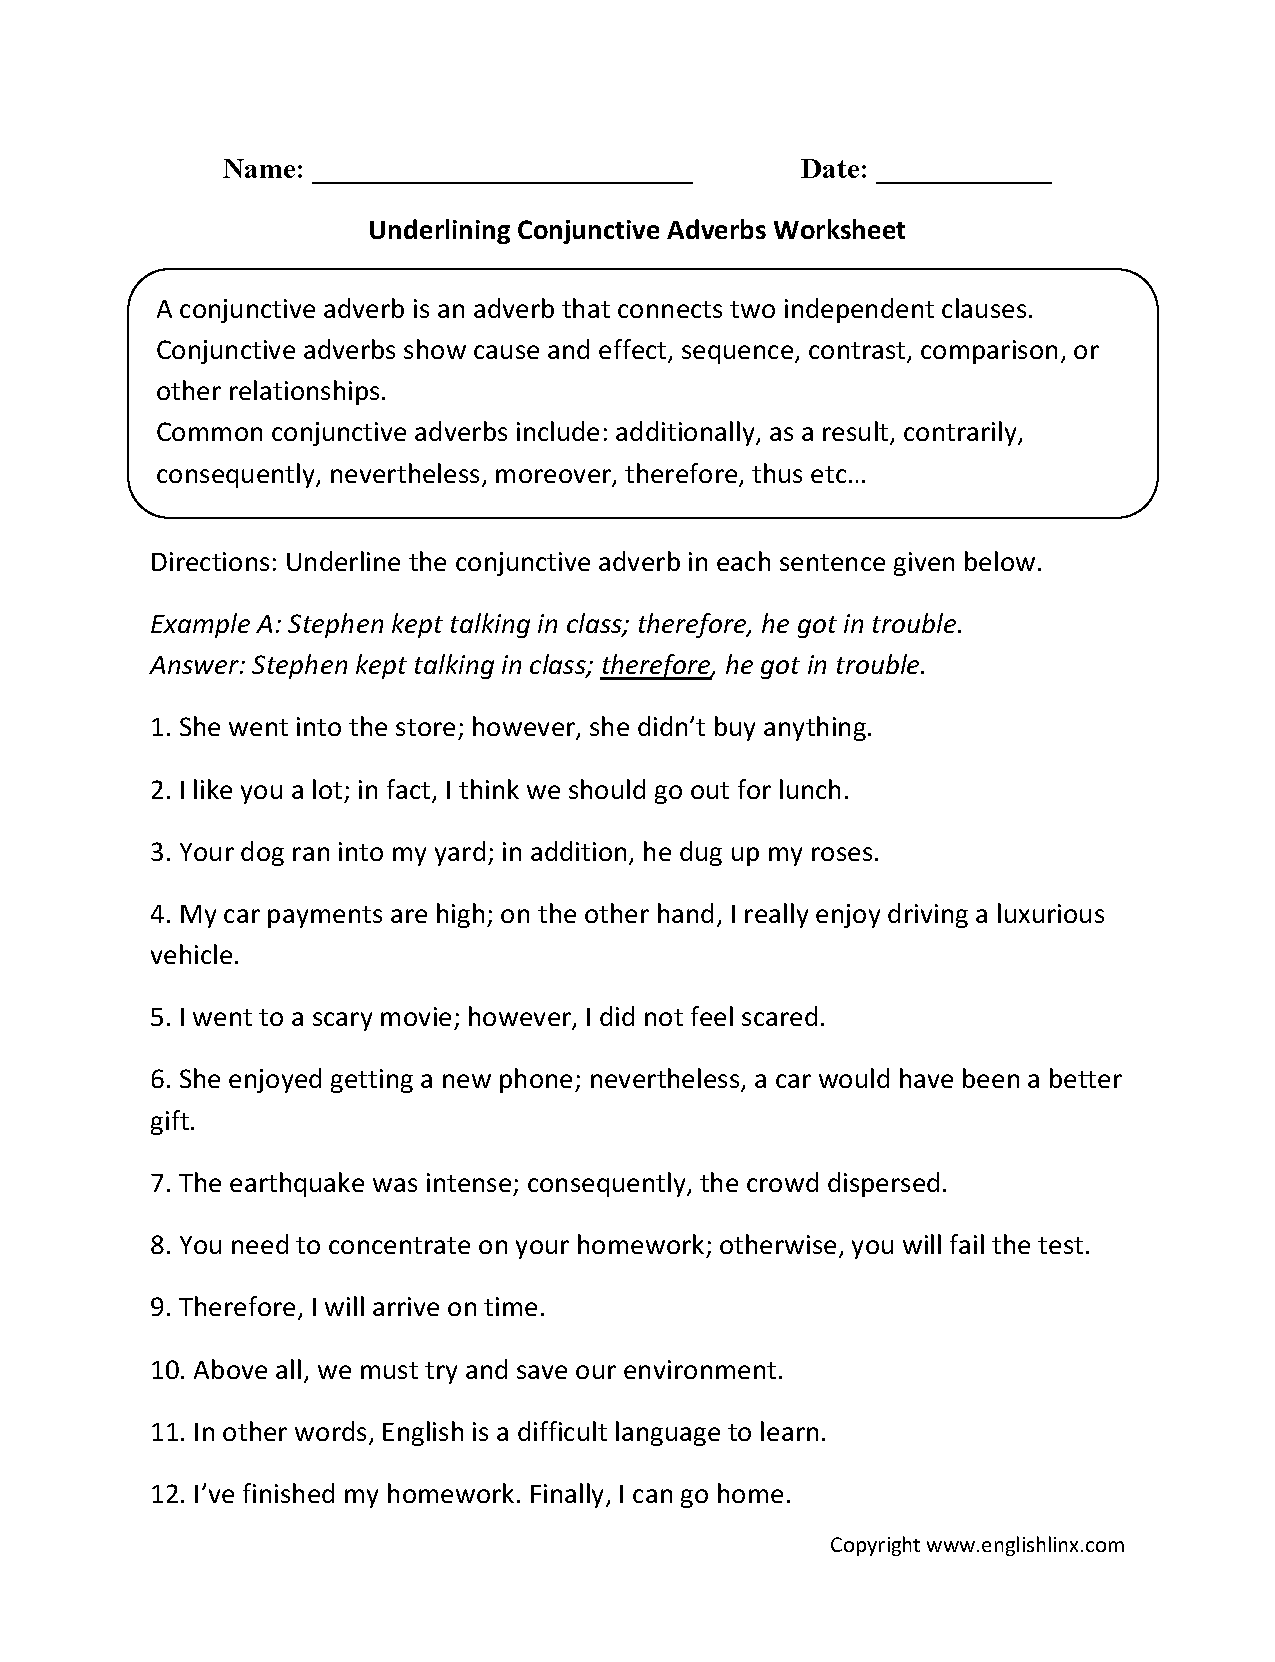 Weirdmailus  Remarkable Englishlinxcom  Conjunctions Worksheets With Fair Worksheet With Astounding Free Printable Kindergarten Sight Words Worksheets Also Critical Reading Worksheet In Addition  Senses Worksheets Kindergarten And Rd Grade Sentence Structure Worksheets As Well As Fast Finishers Worksheets Additionally Alphabet Symmetry Worksheet From Englishlinxcom With Weirdmailus  Fair Englishlinxcom  Conjunctions Worksheets With Astounding Worksheet And Remarkable Free Printable Kindergarten Sight Words Worksheets Also Critical Reading Worksheet In Addition  Senses Worksheets Kindergarten From Englishlinxcom